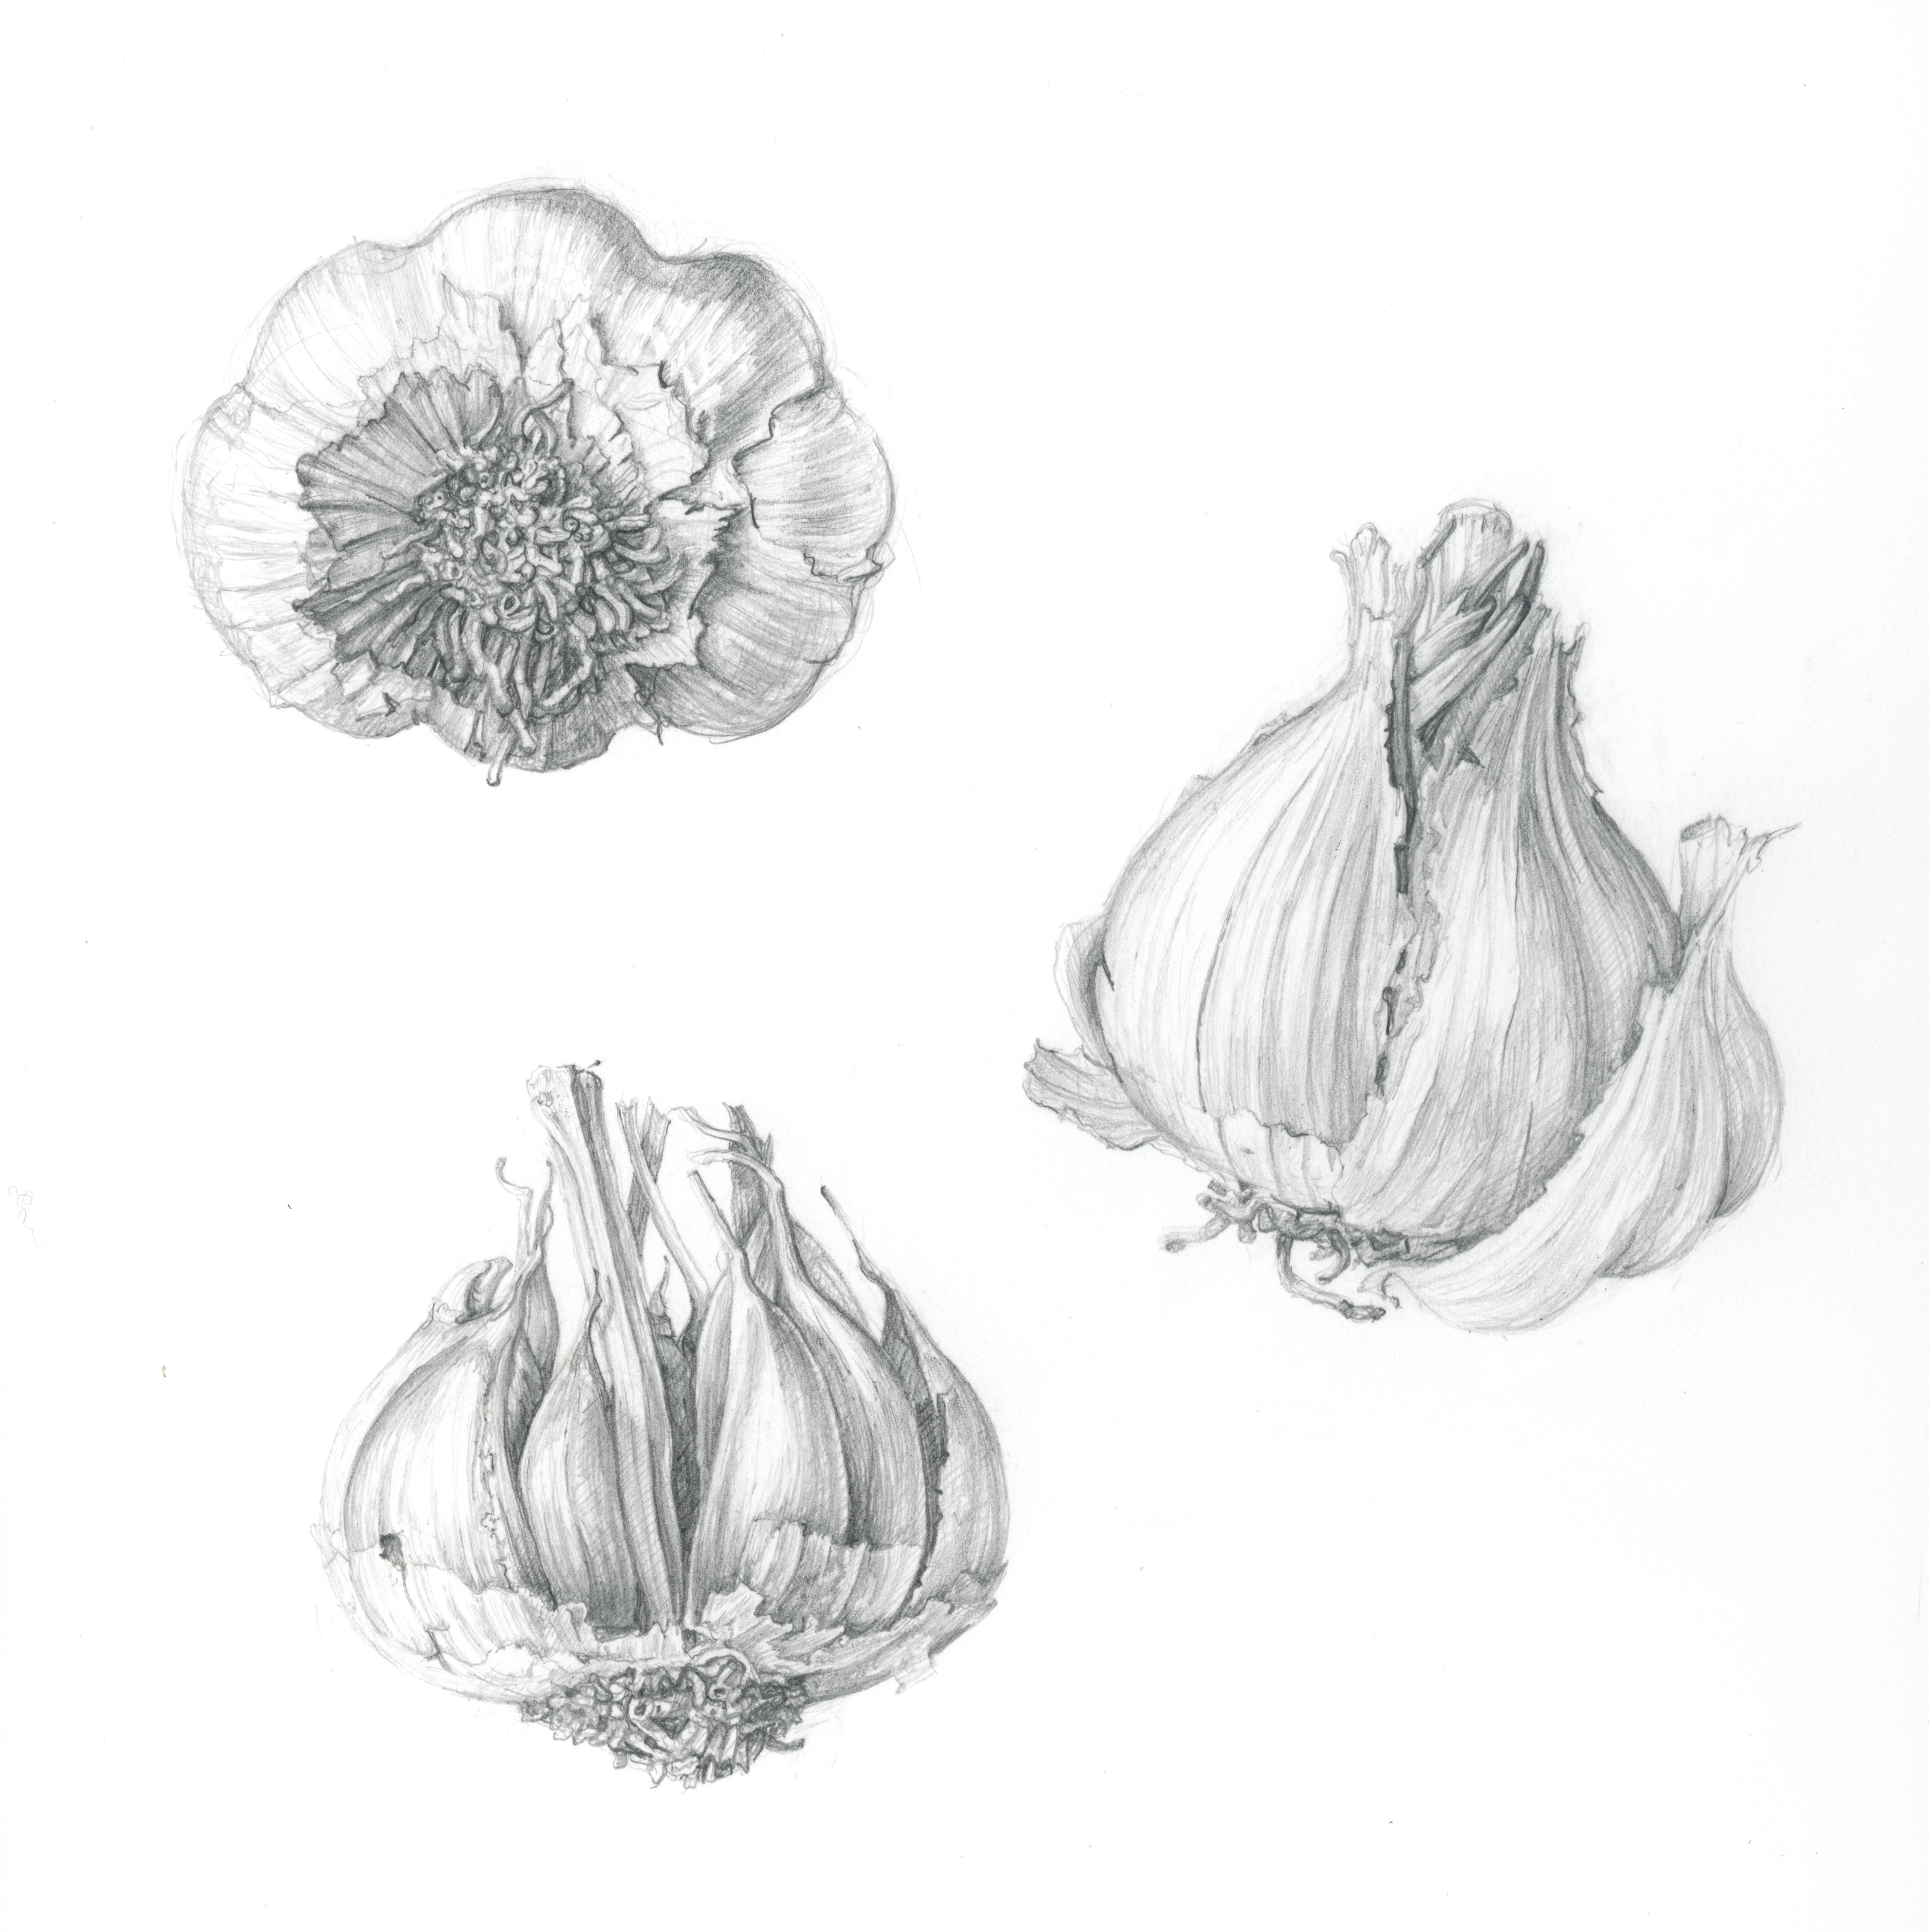 Garlic studies